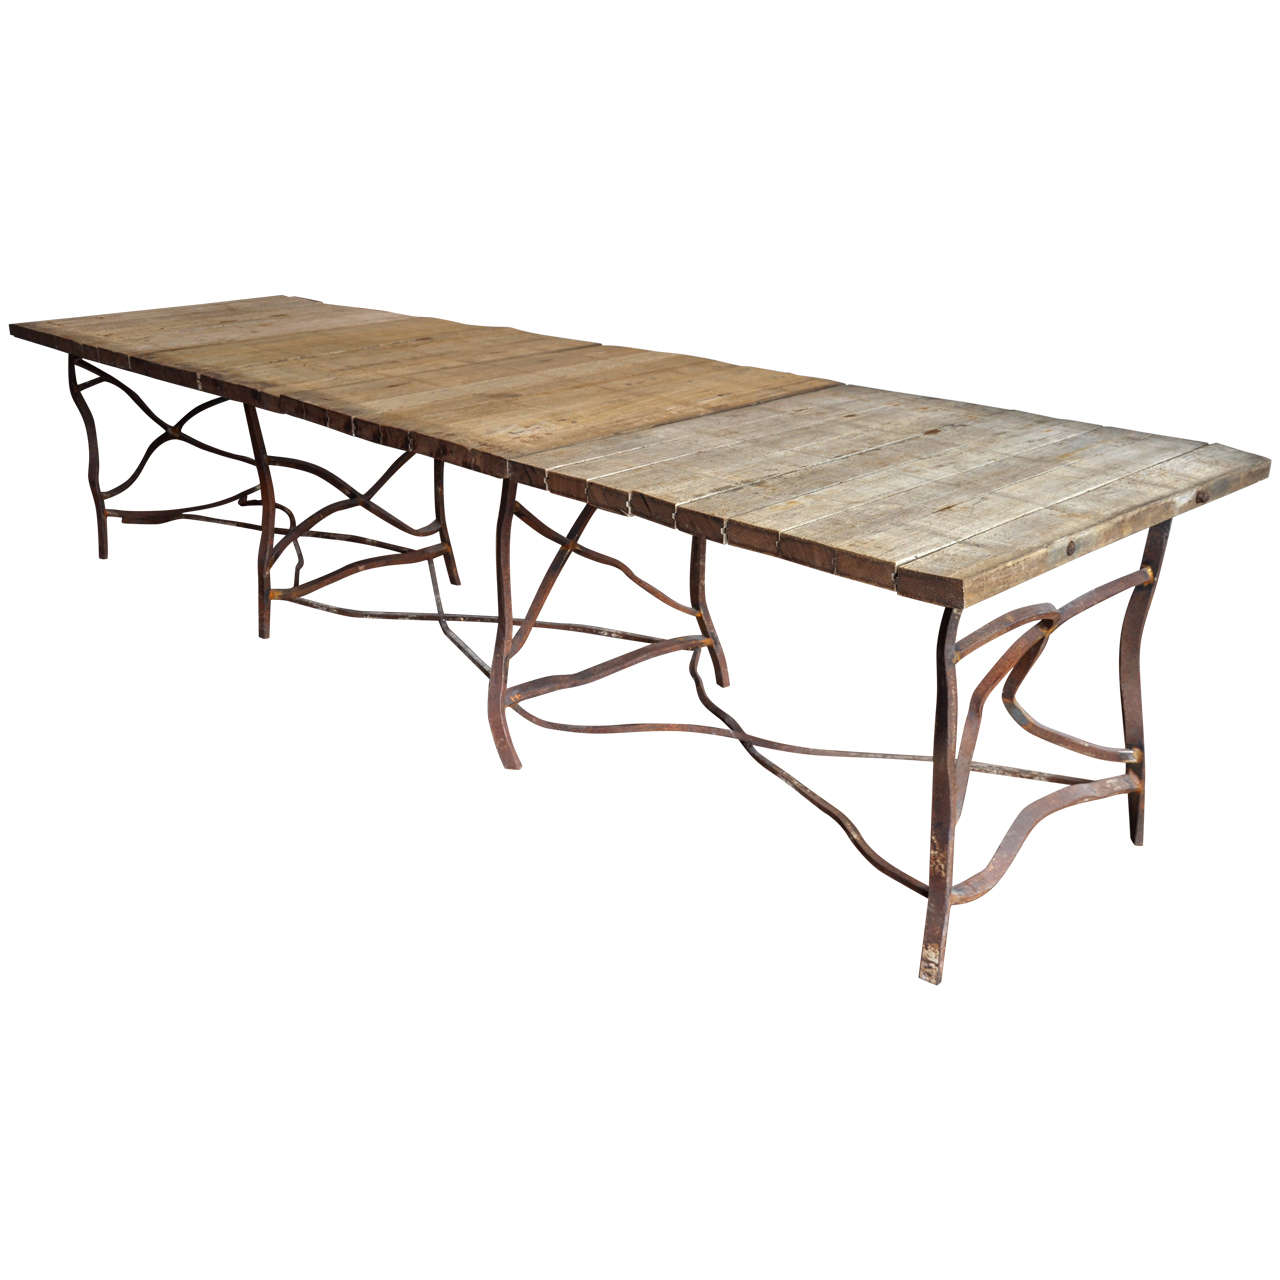 Extra long rusty base french table at 1stdibs for Long dining table